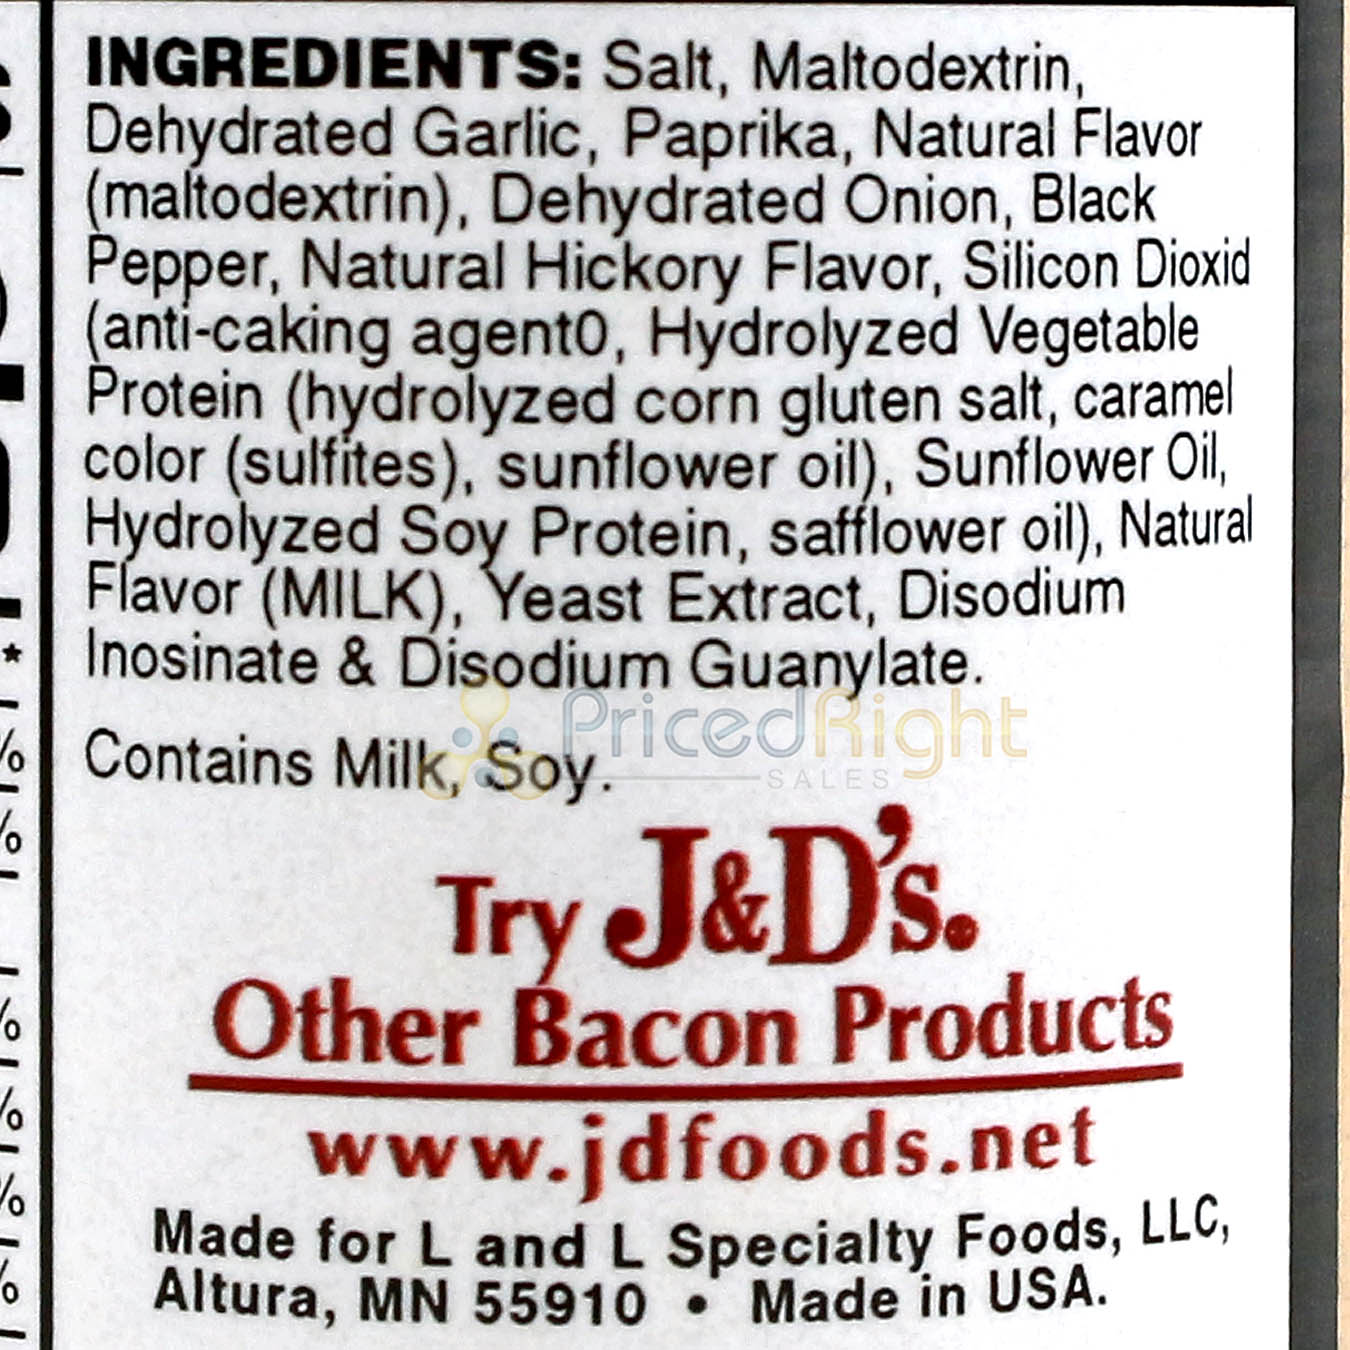 J&D's Original Bacon Salt 2.5oz All Natural Bacon Flavored Seasoning Spice Rub